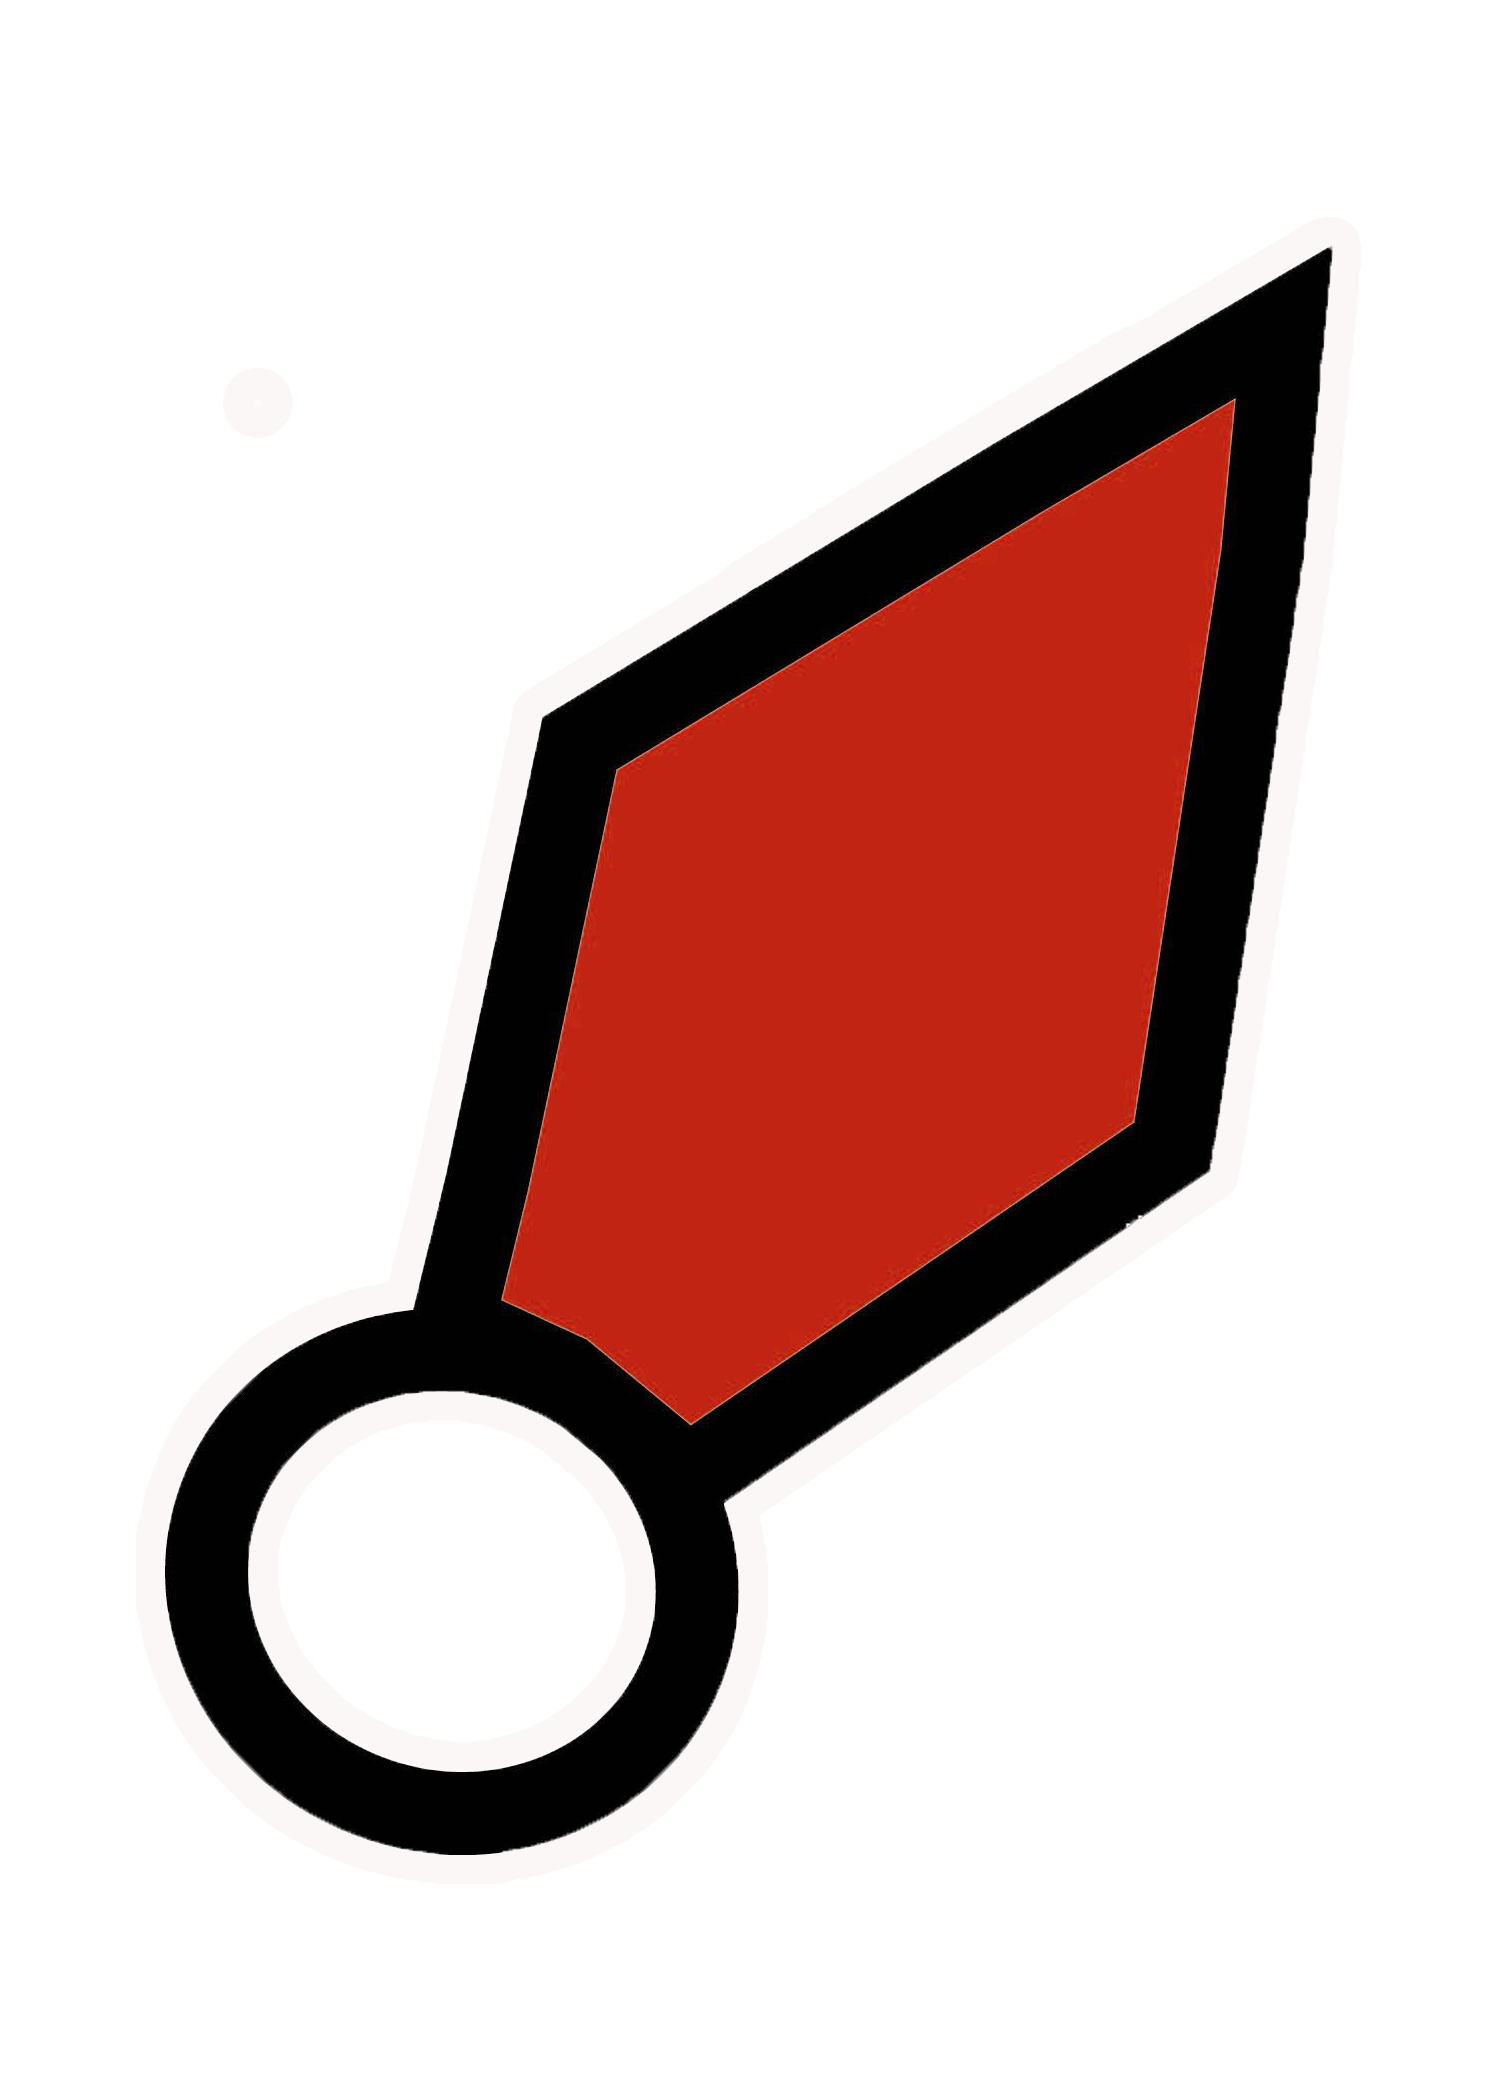 The logo used for the Red Nun Bar and Grill